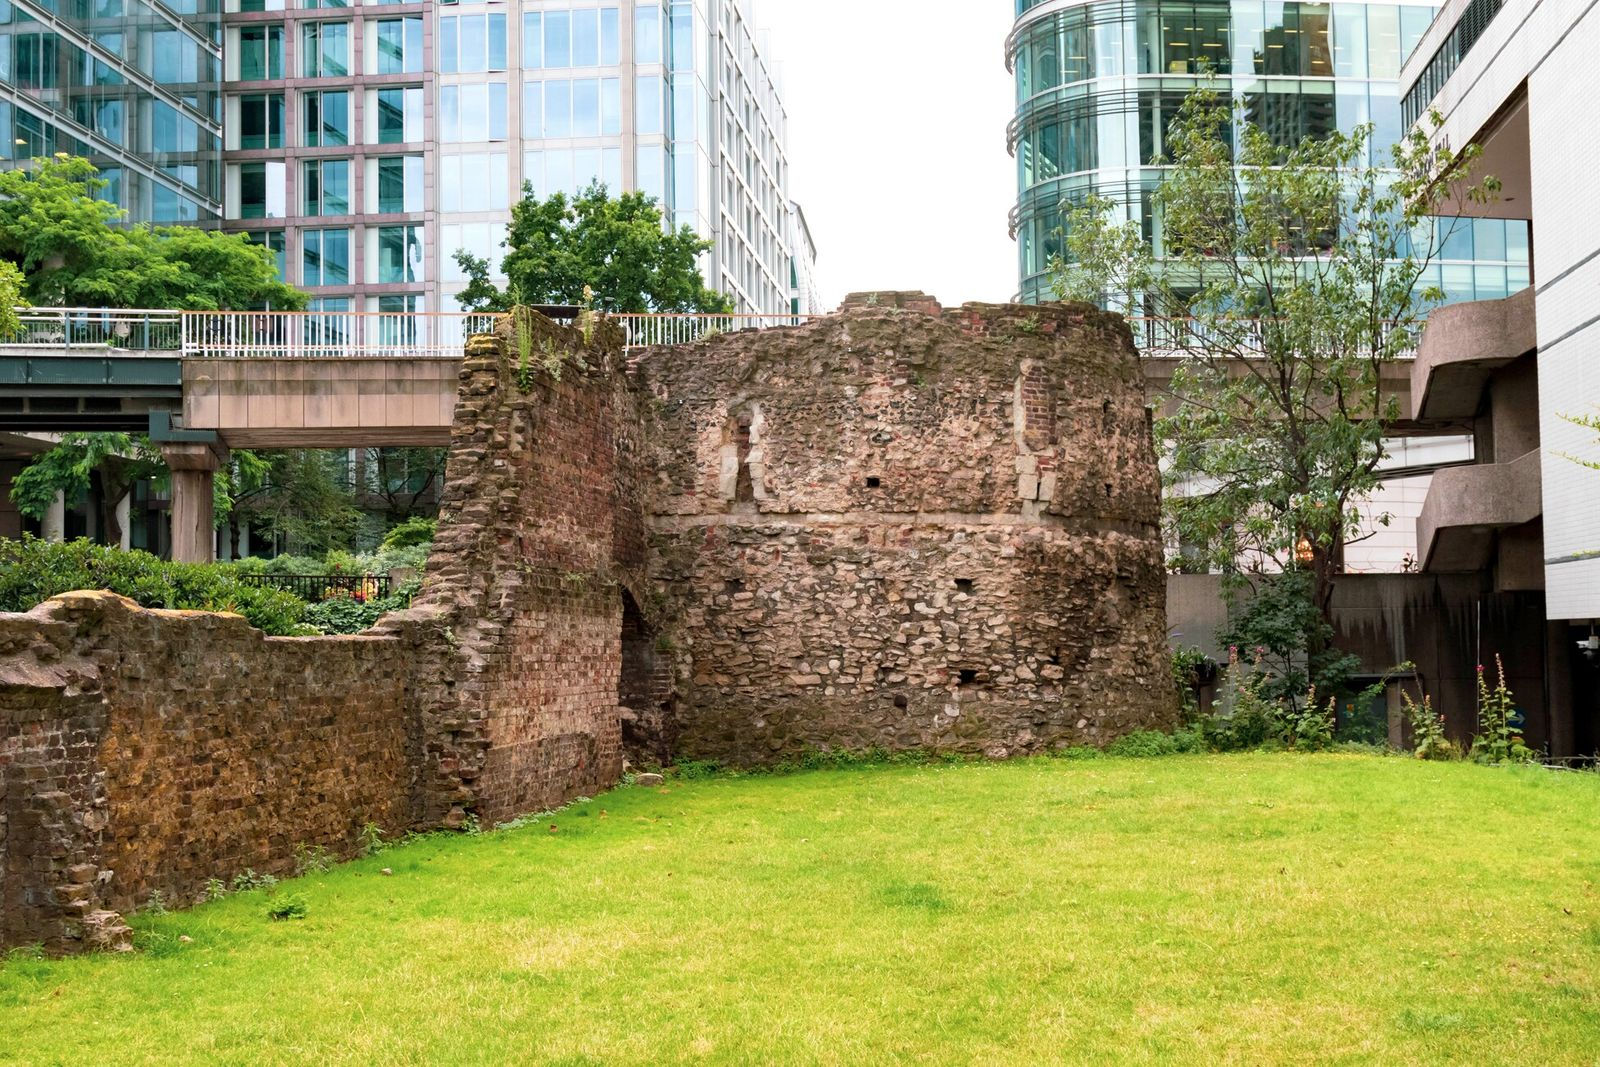 Fragments of London's ancient Roman walls can still be found among some modern-day office buildings in ...